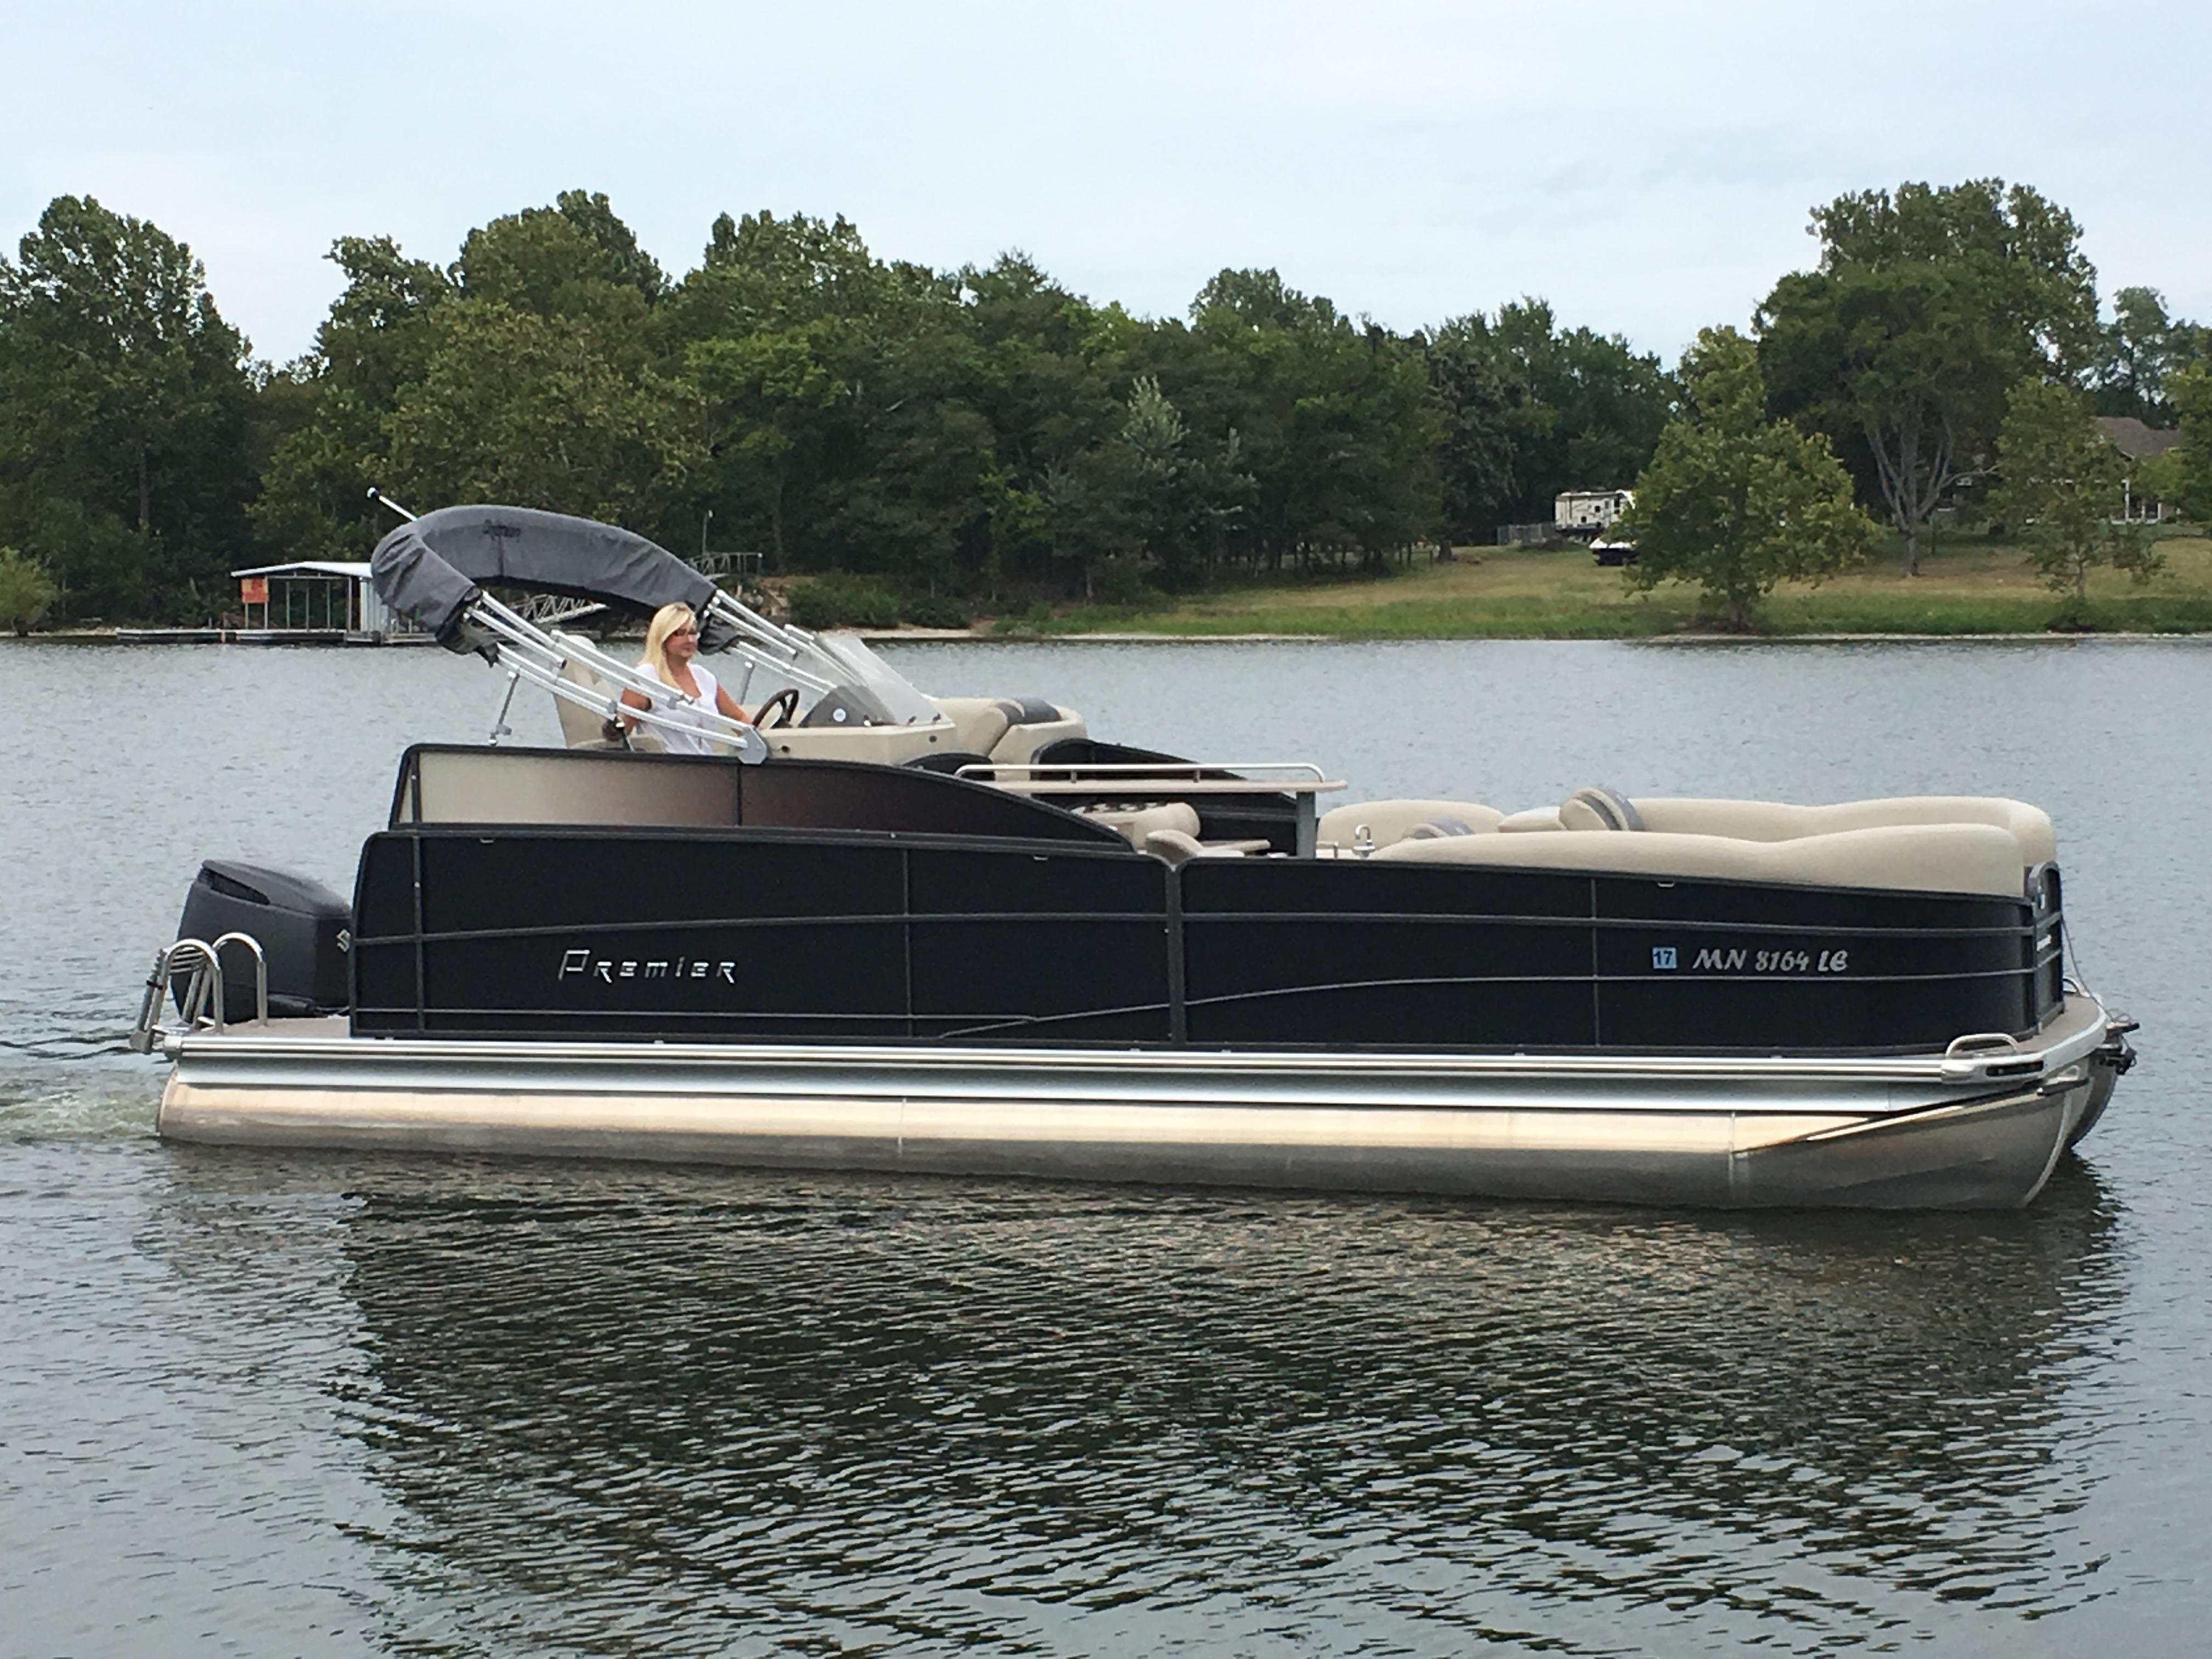 2015 Premier Grand View Power Boat For Sale Www